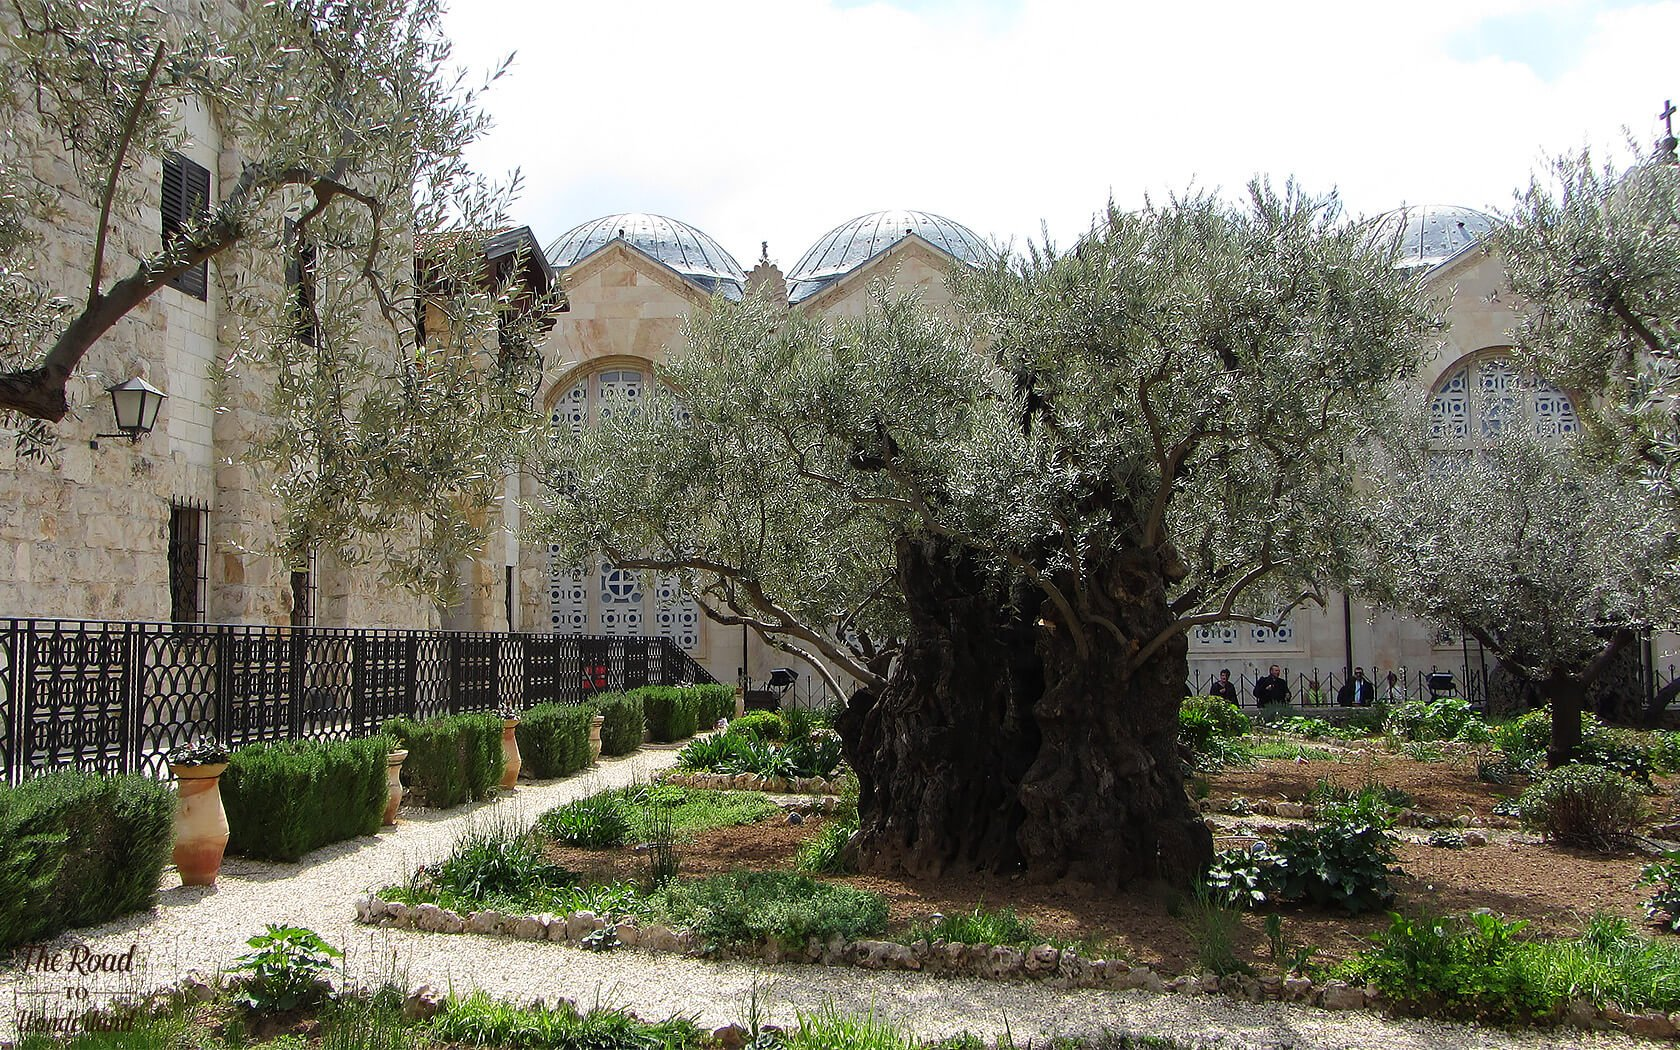 Religious sites in Jerusalem: Garden of Gethsemane